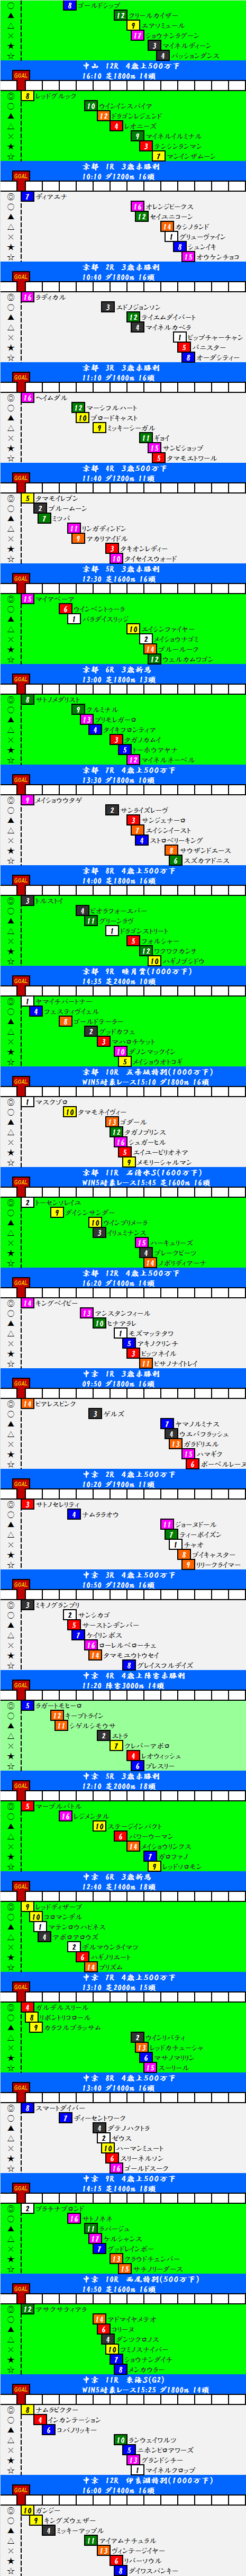 2015012502.png